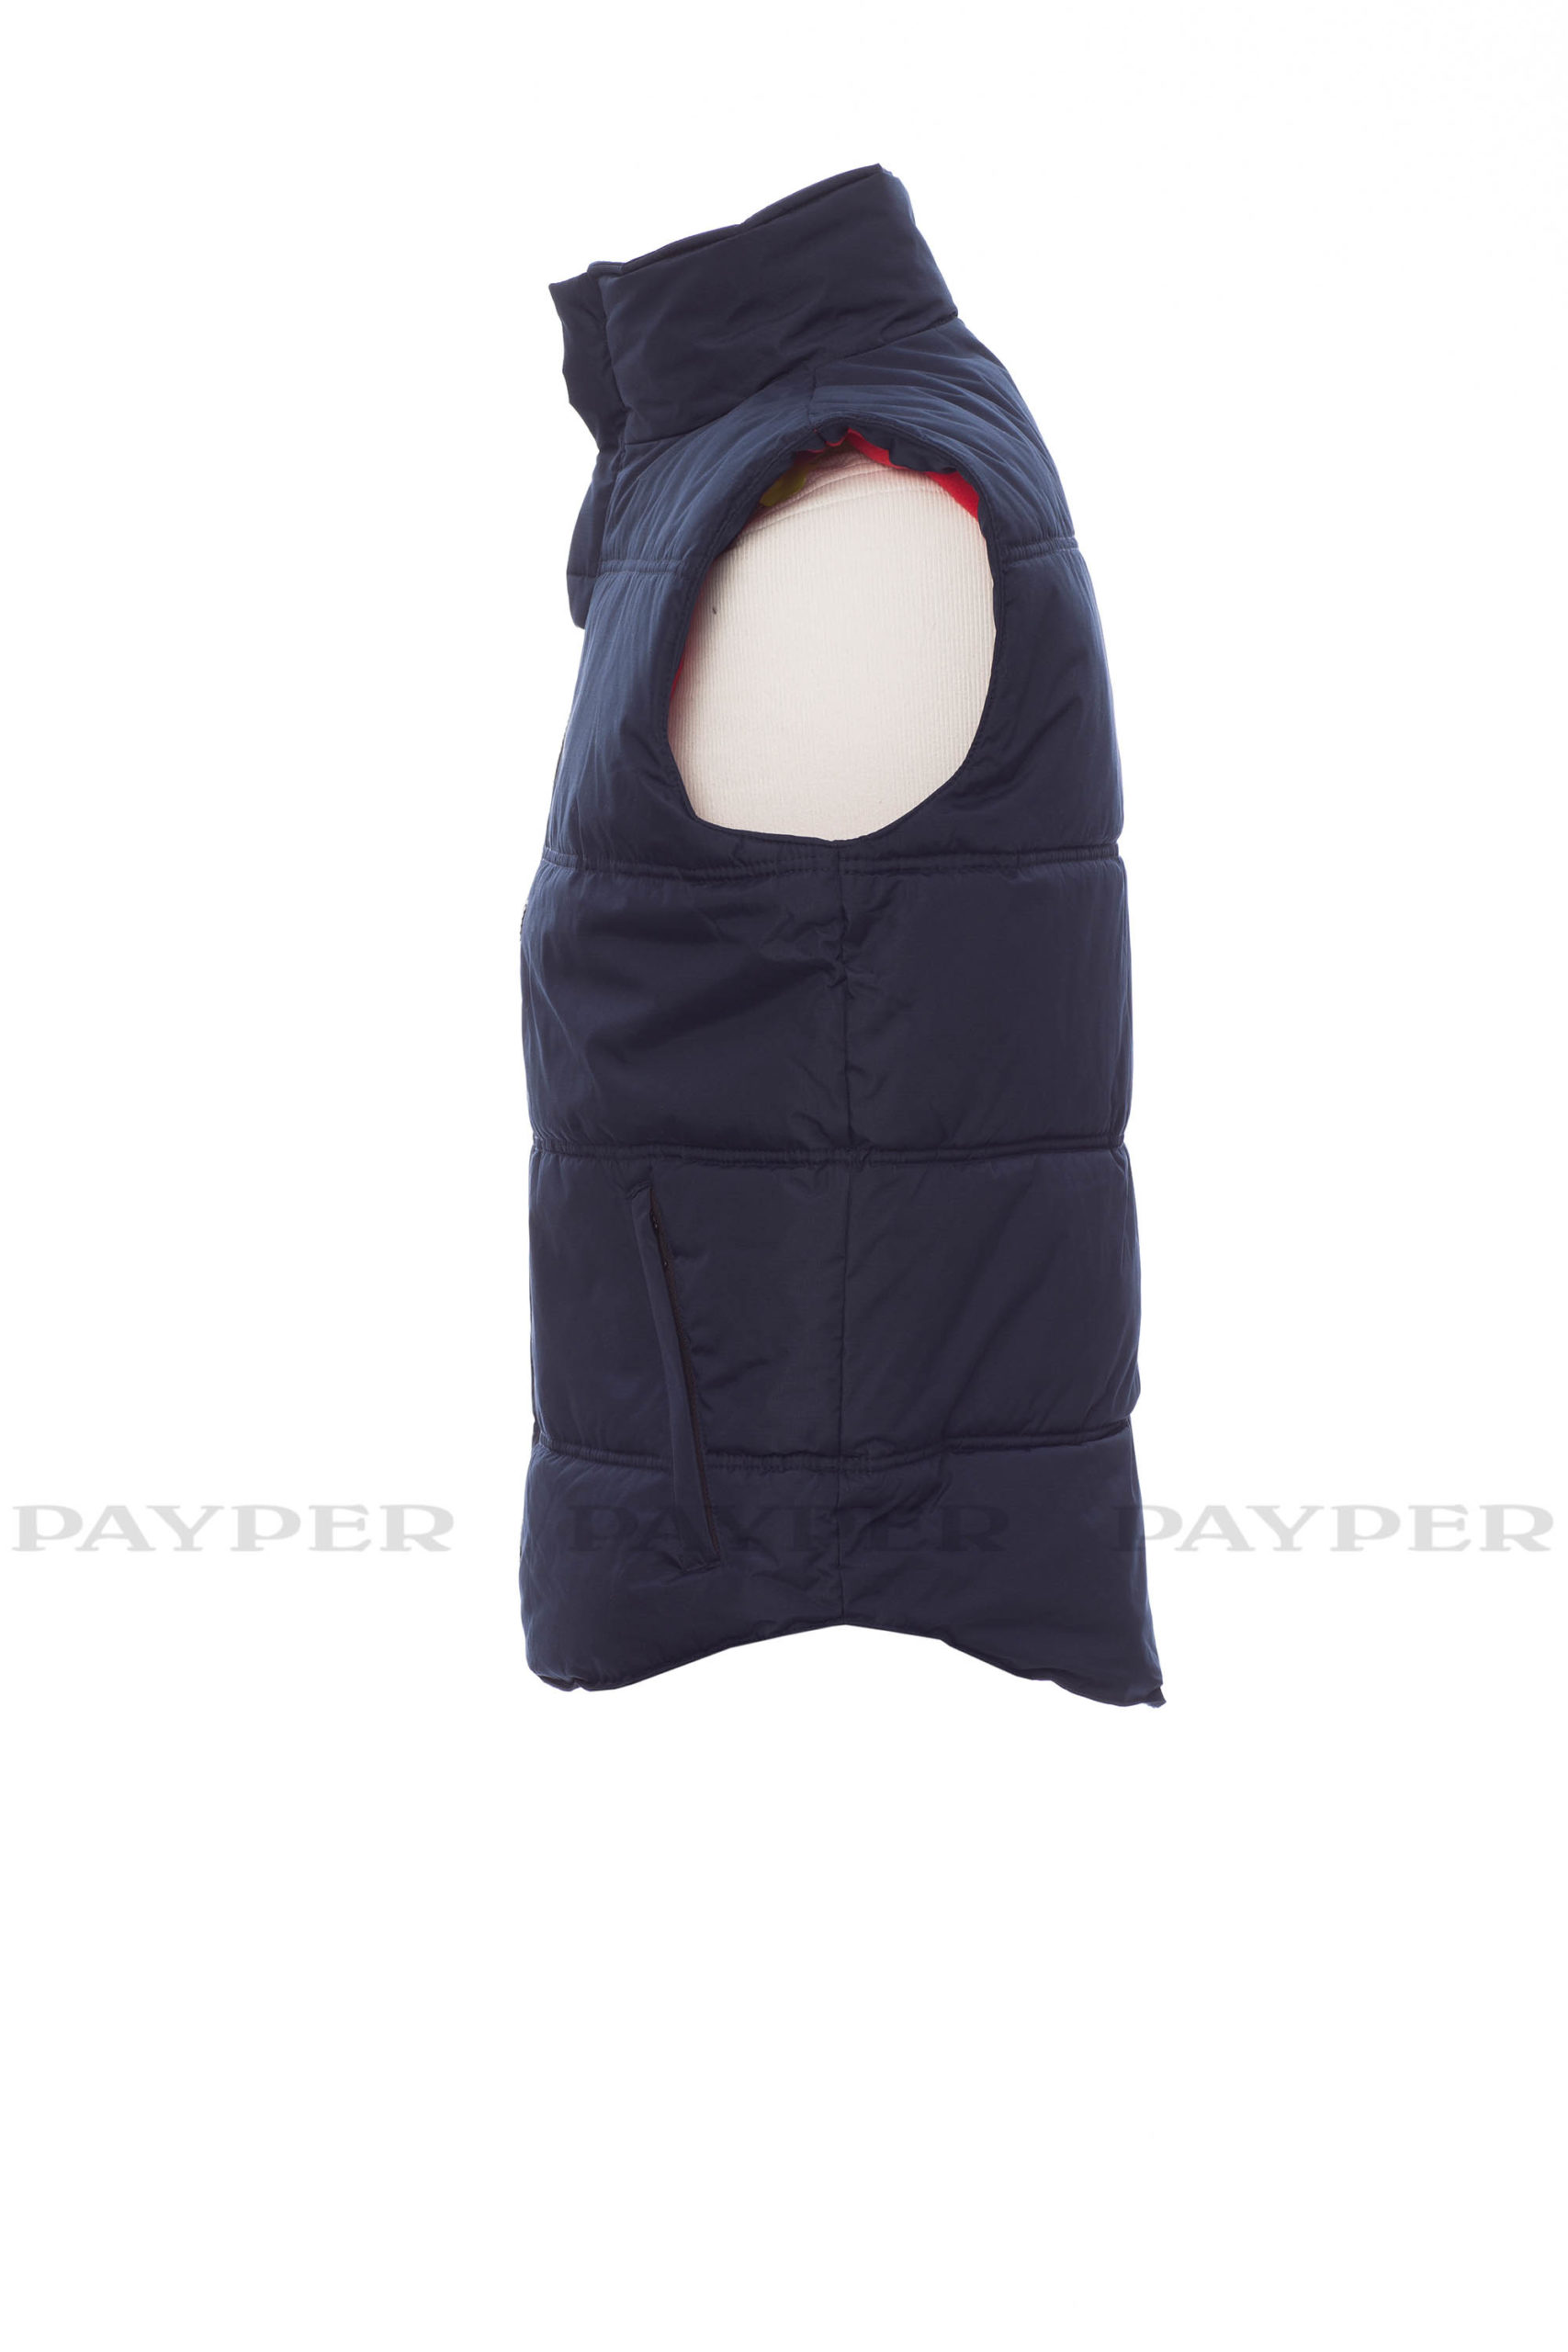 Daytona, gilet unisexe, payper, ripstop 240T, poche poitrine, polyester, 109 t-shirts, micropolaire, contraste, curseur metal, deux poches laterales